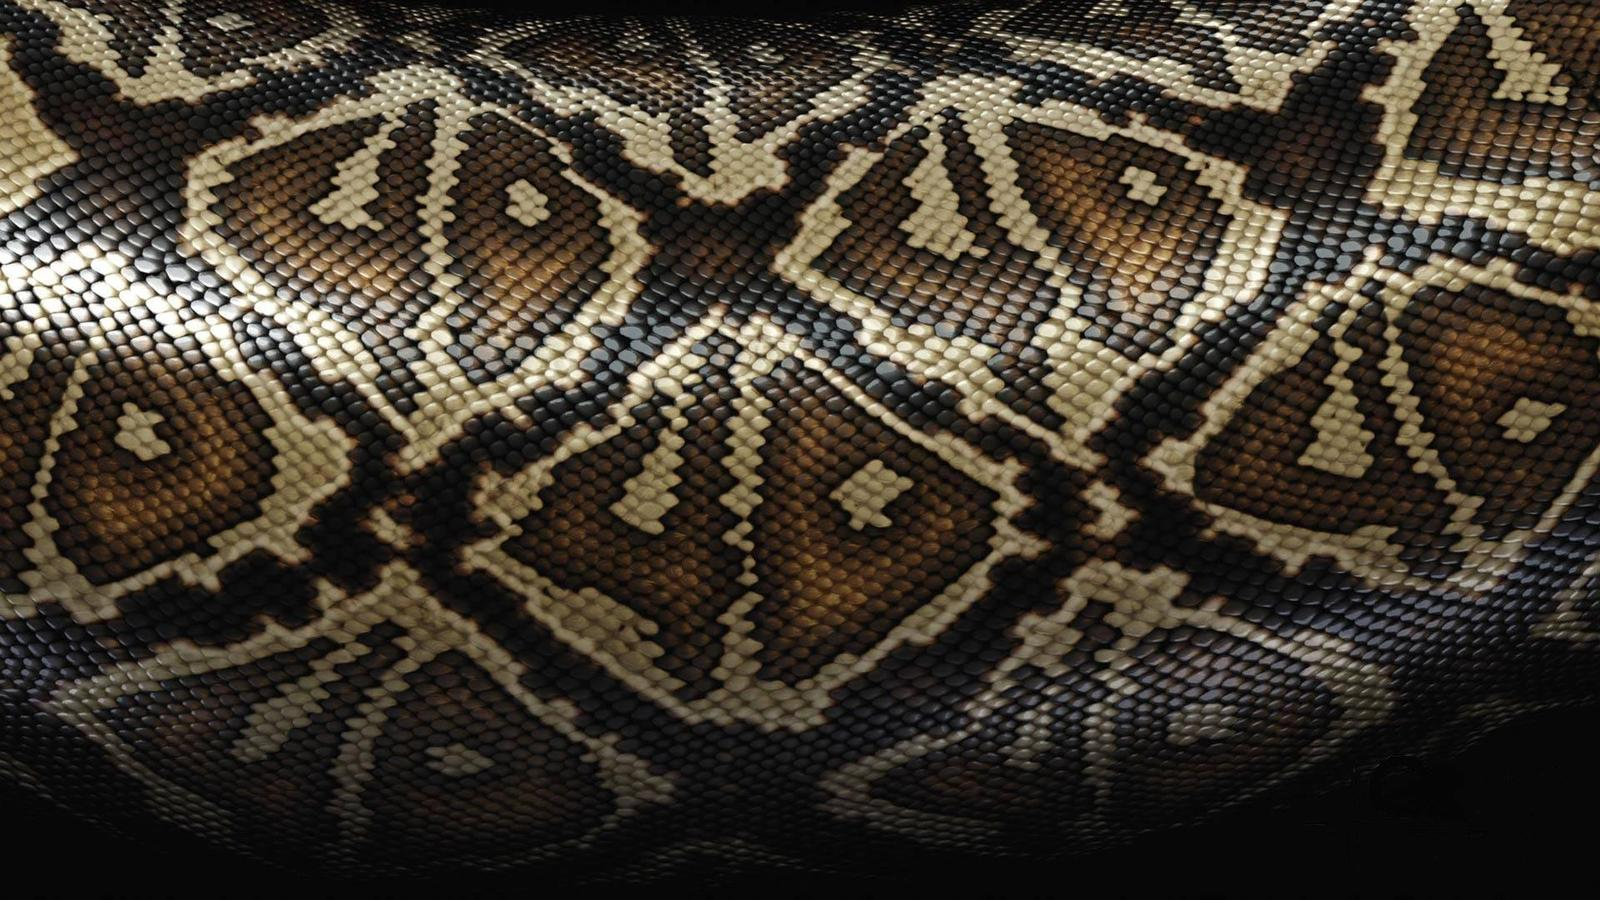 snake wallpaper hd